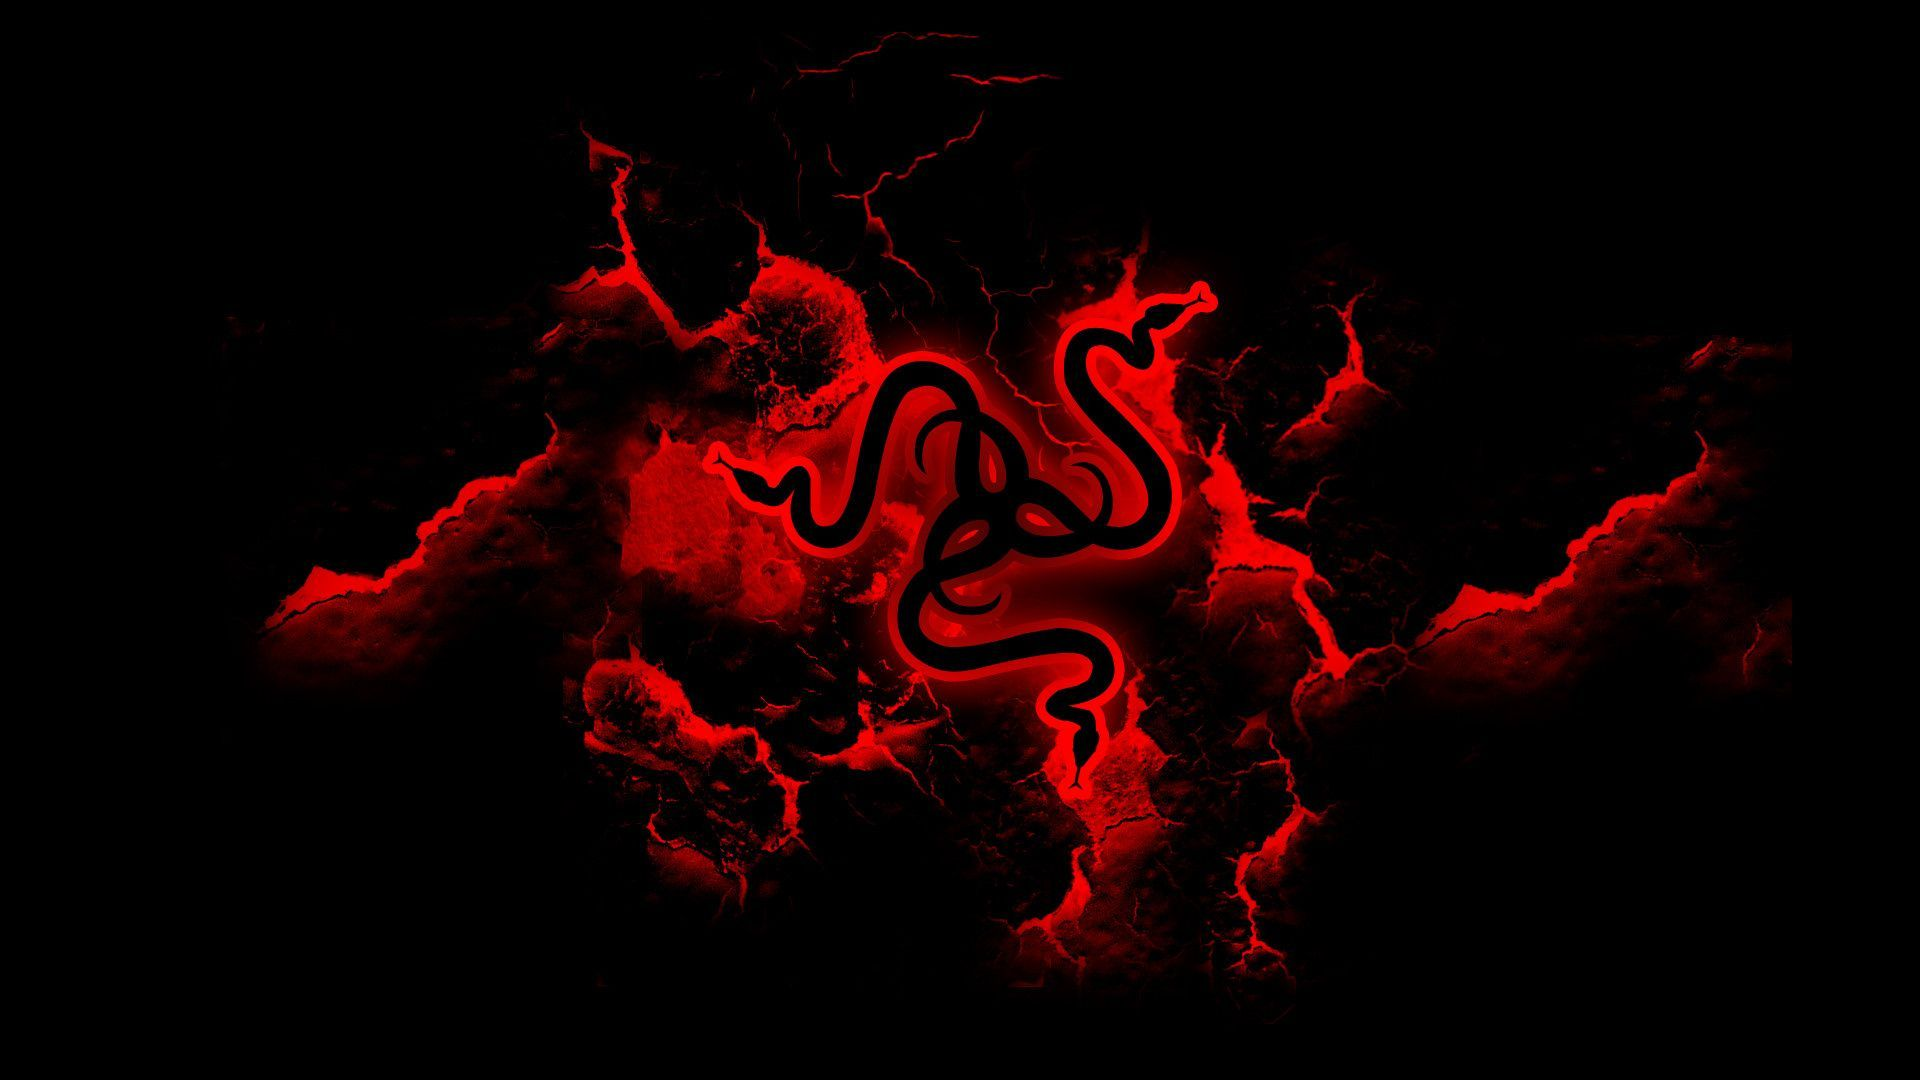 Red Razer Wallpapers Top Free Red Razer Backgrounds Wallpaperaccess